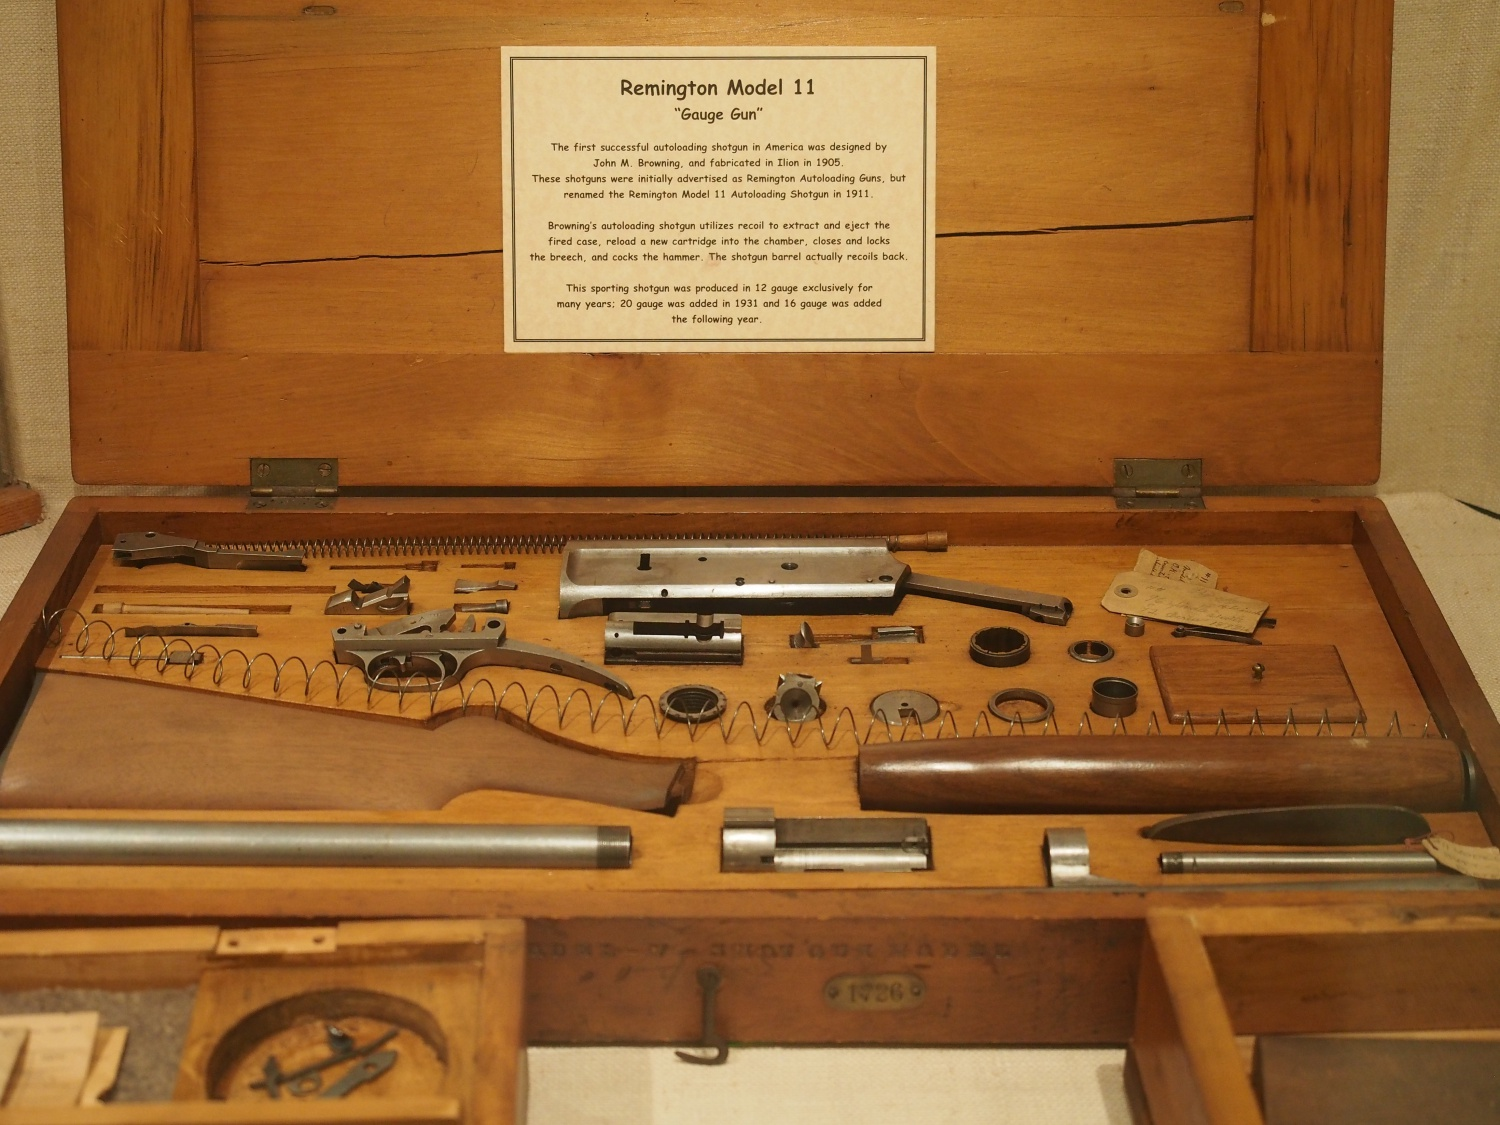 This is an example or template of a particular gun model. All Remington guns had these made with their own wooden case.